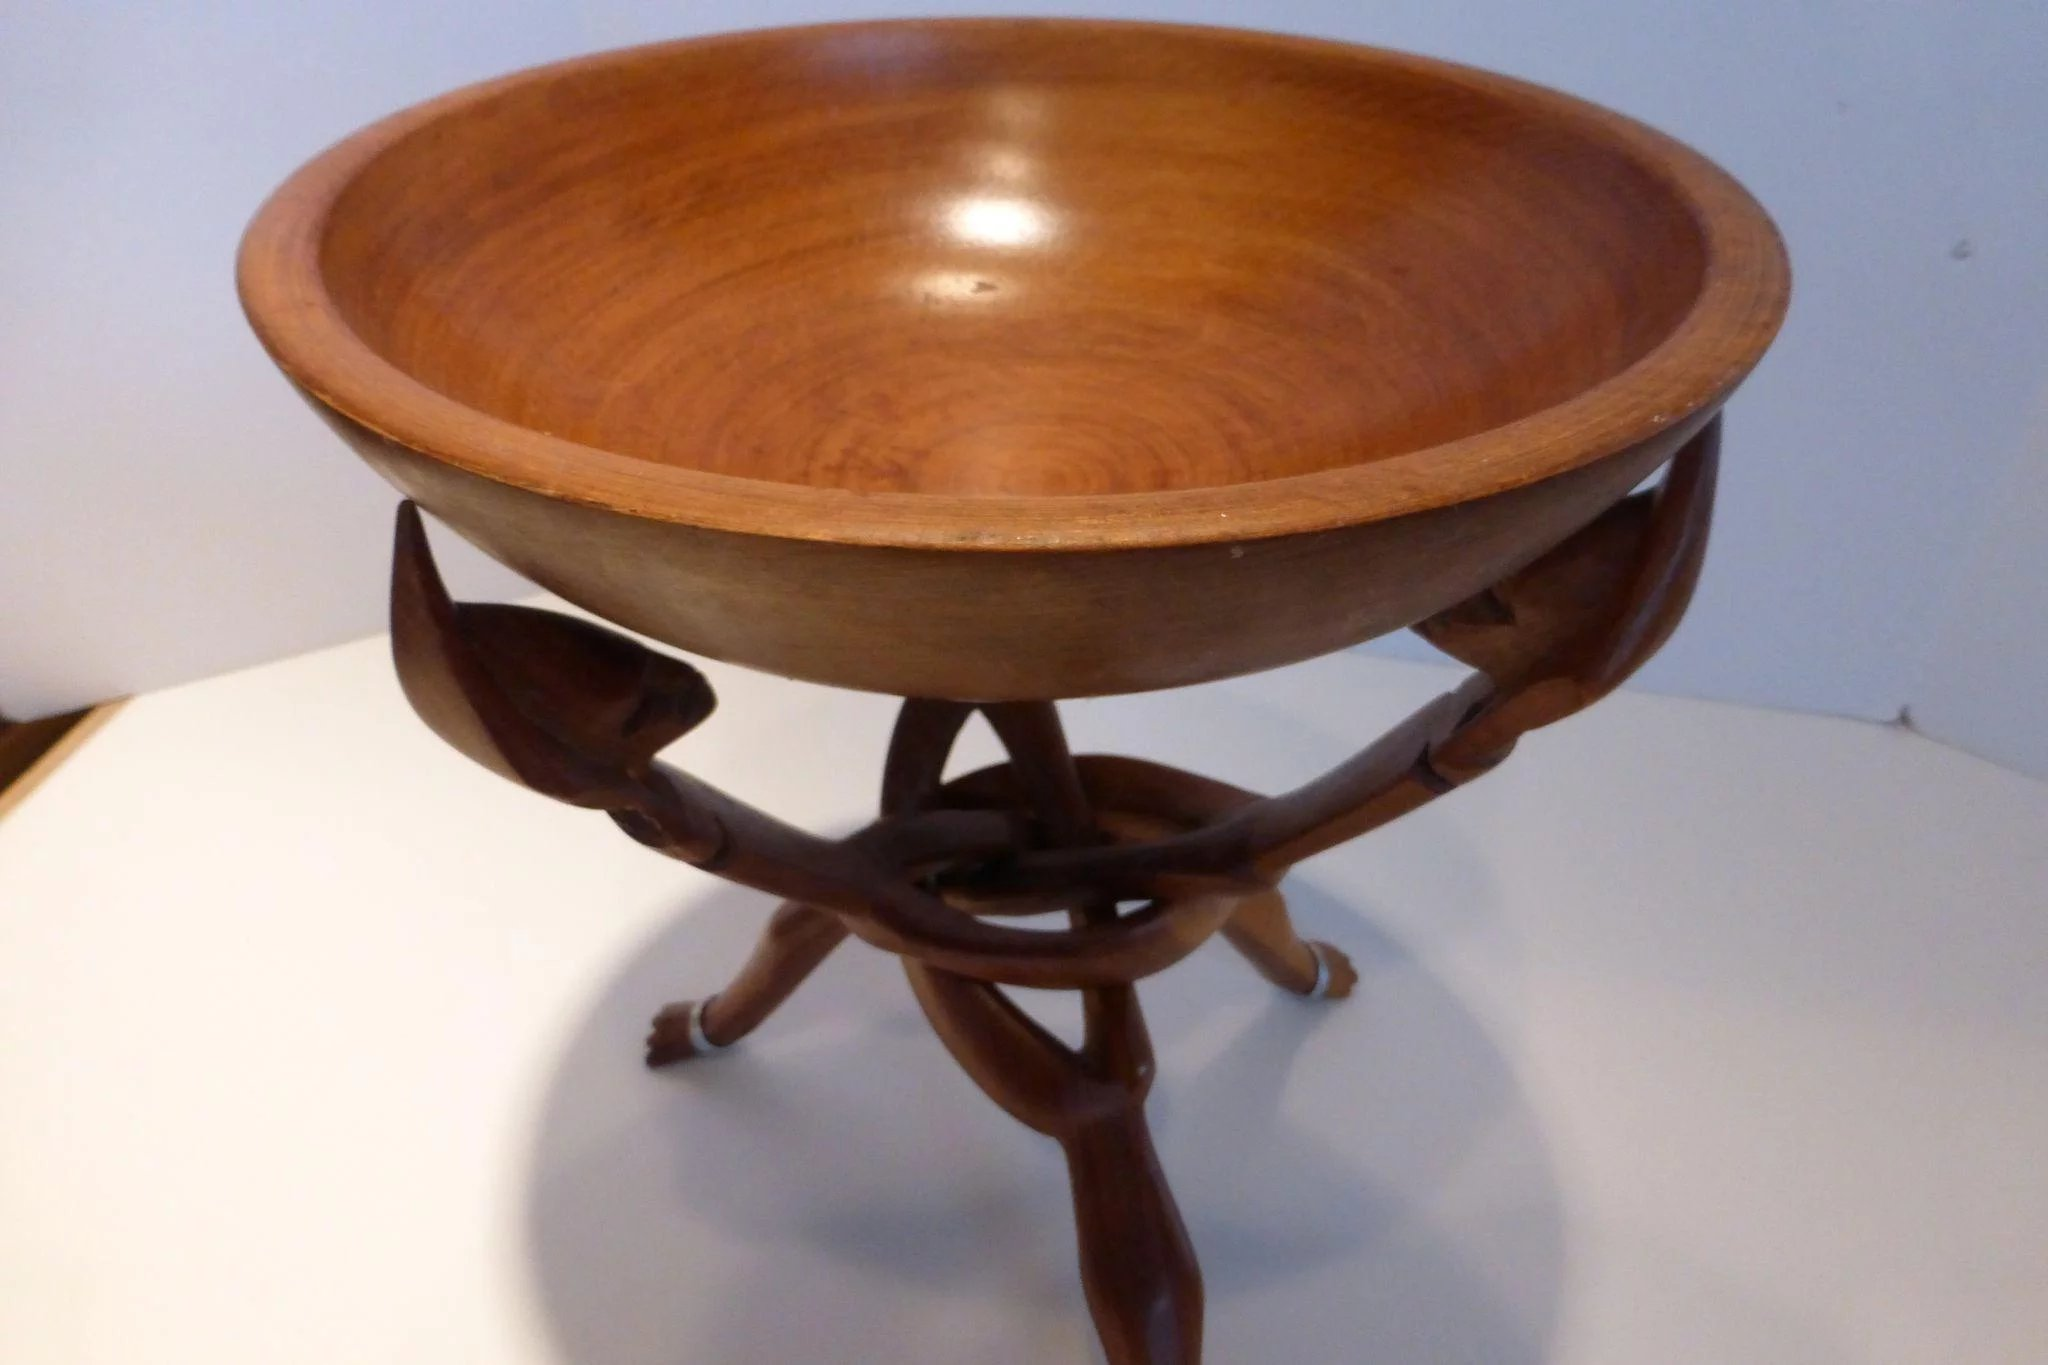 Tribal African Carved Wooden Tripod Table Stand Amp Bowl